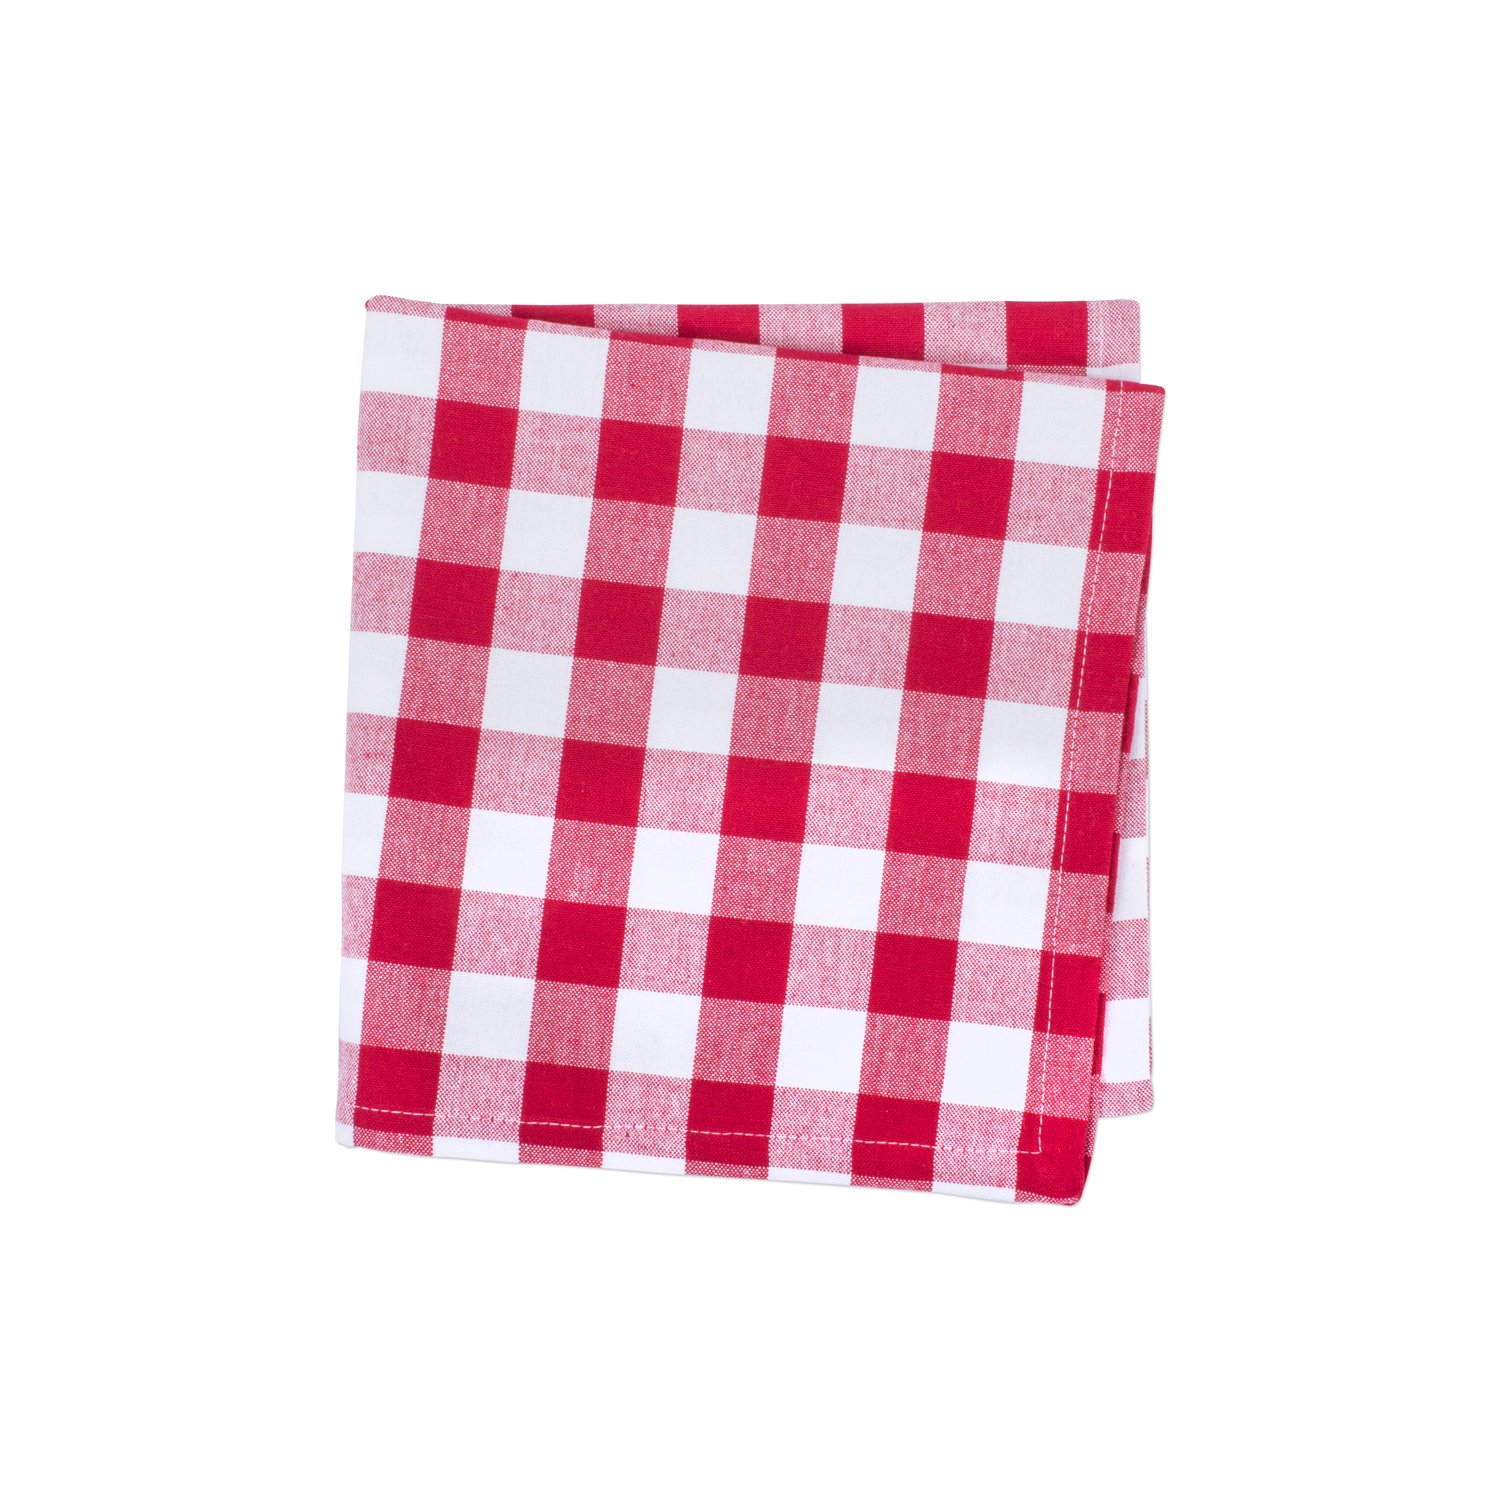 DII Oversized 20x20 Cotton Napkin, Pack of 6, Red & White Check - Perfect for Fall, Thanksgiving, Farmhouse DÃcor, Christmas, Picnics & Potlucks or Everyday Use by DII (Image #4)